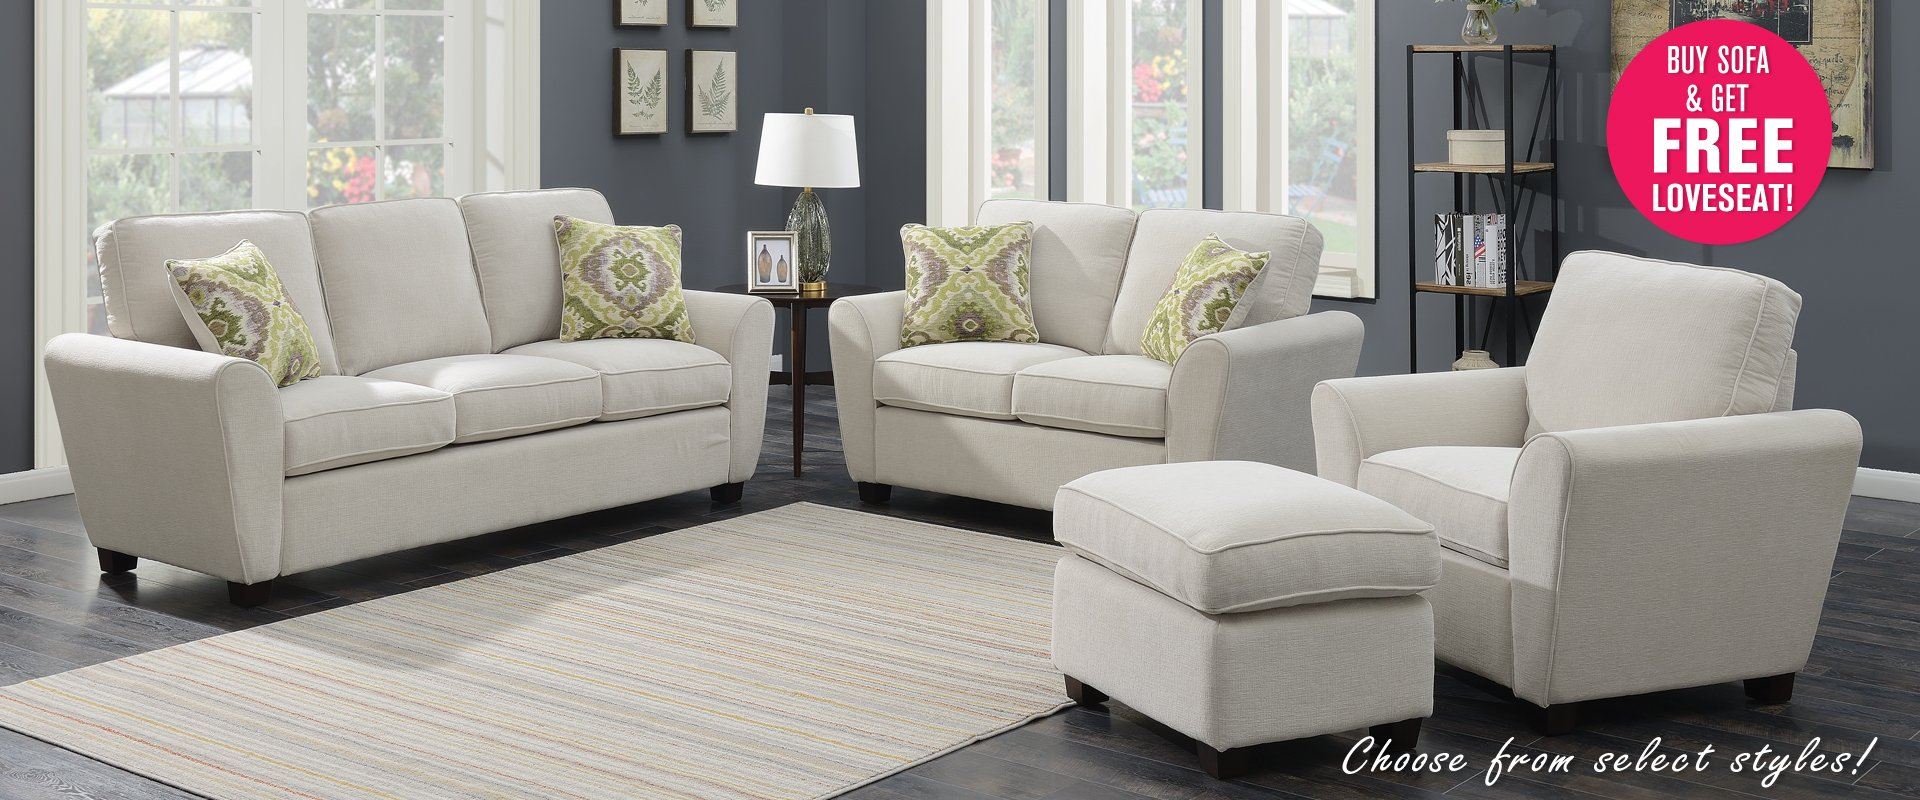 Sectionals starting at $869.99